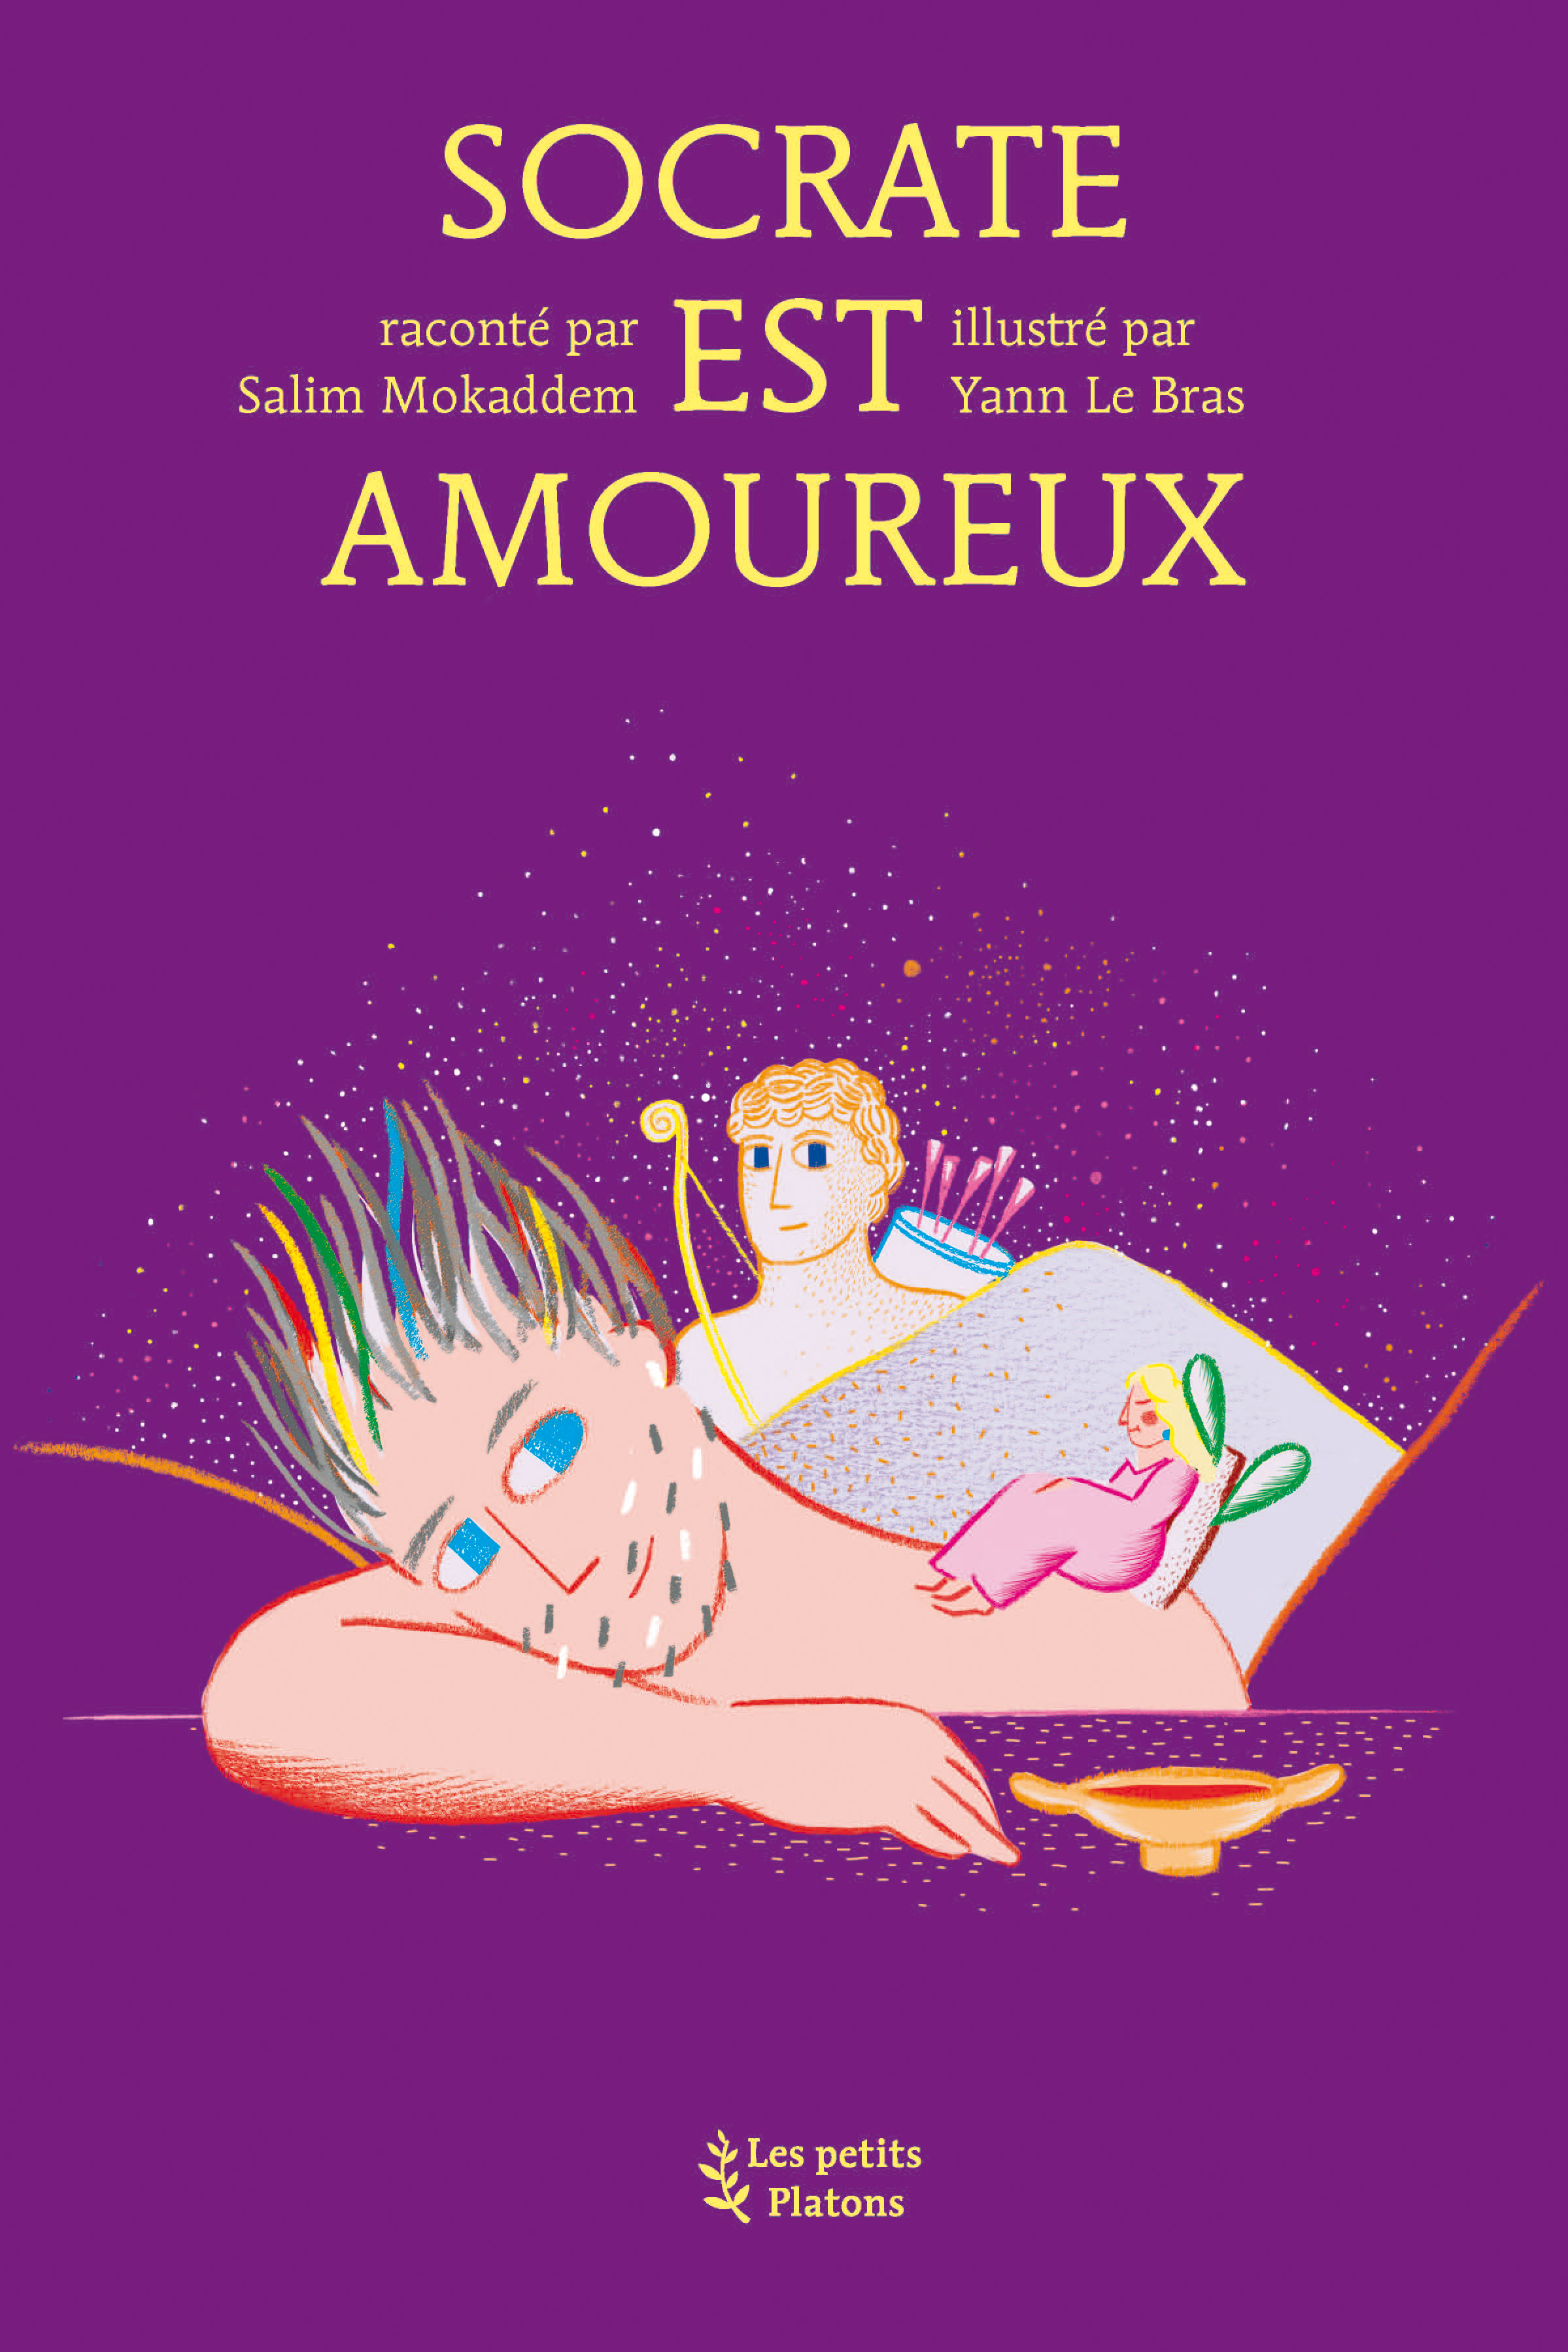 site amoureux nous lubertin